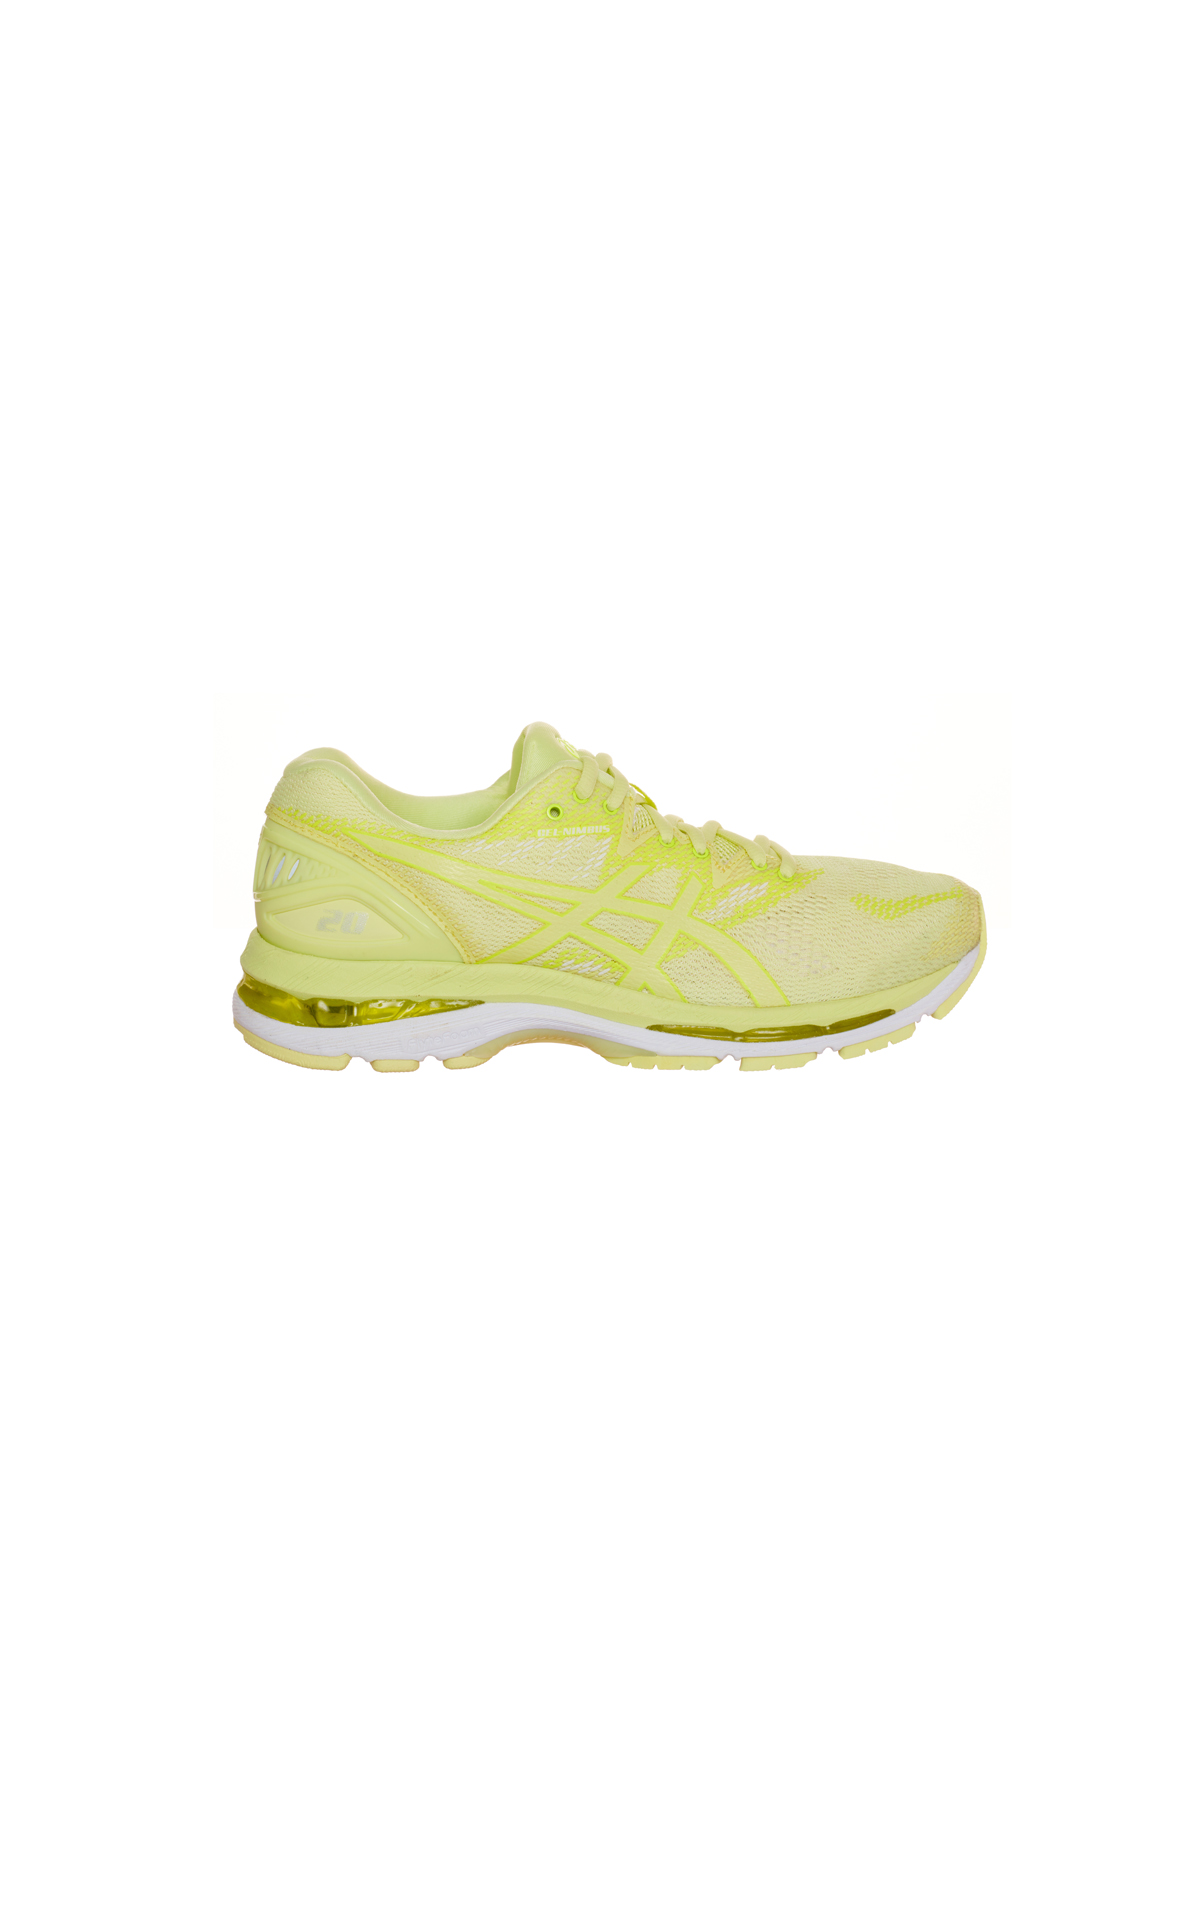 ASICS Lime nimbus 20 from Bicester Village